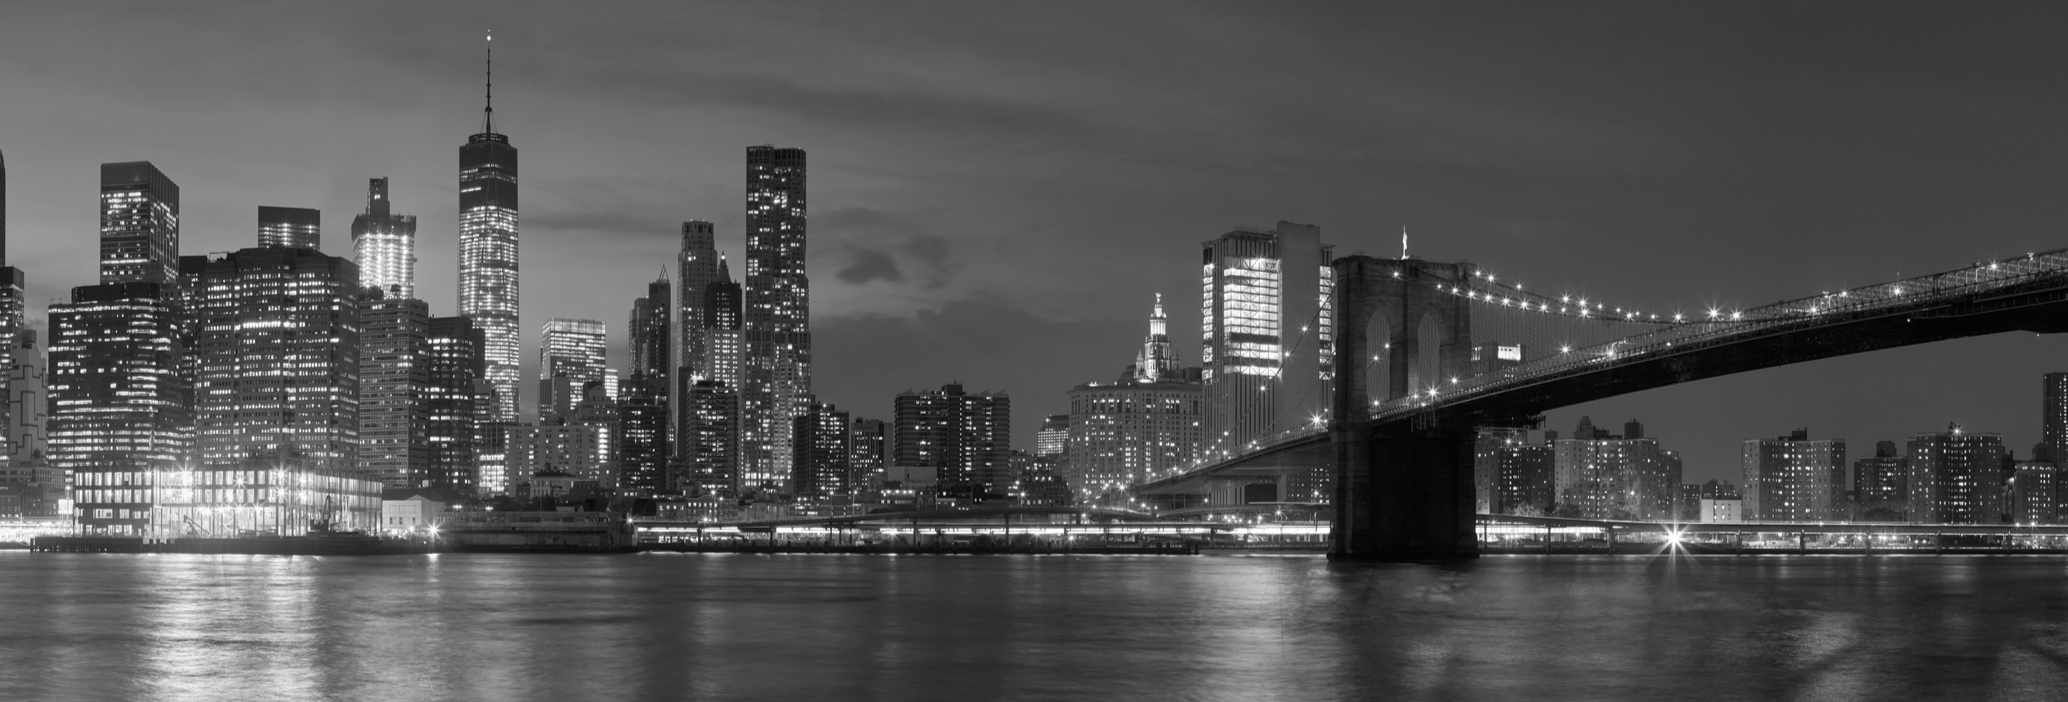 New york city with brooklyn bridge iconic skyline panorama at night in black and white table wrap